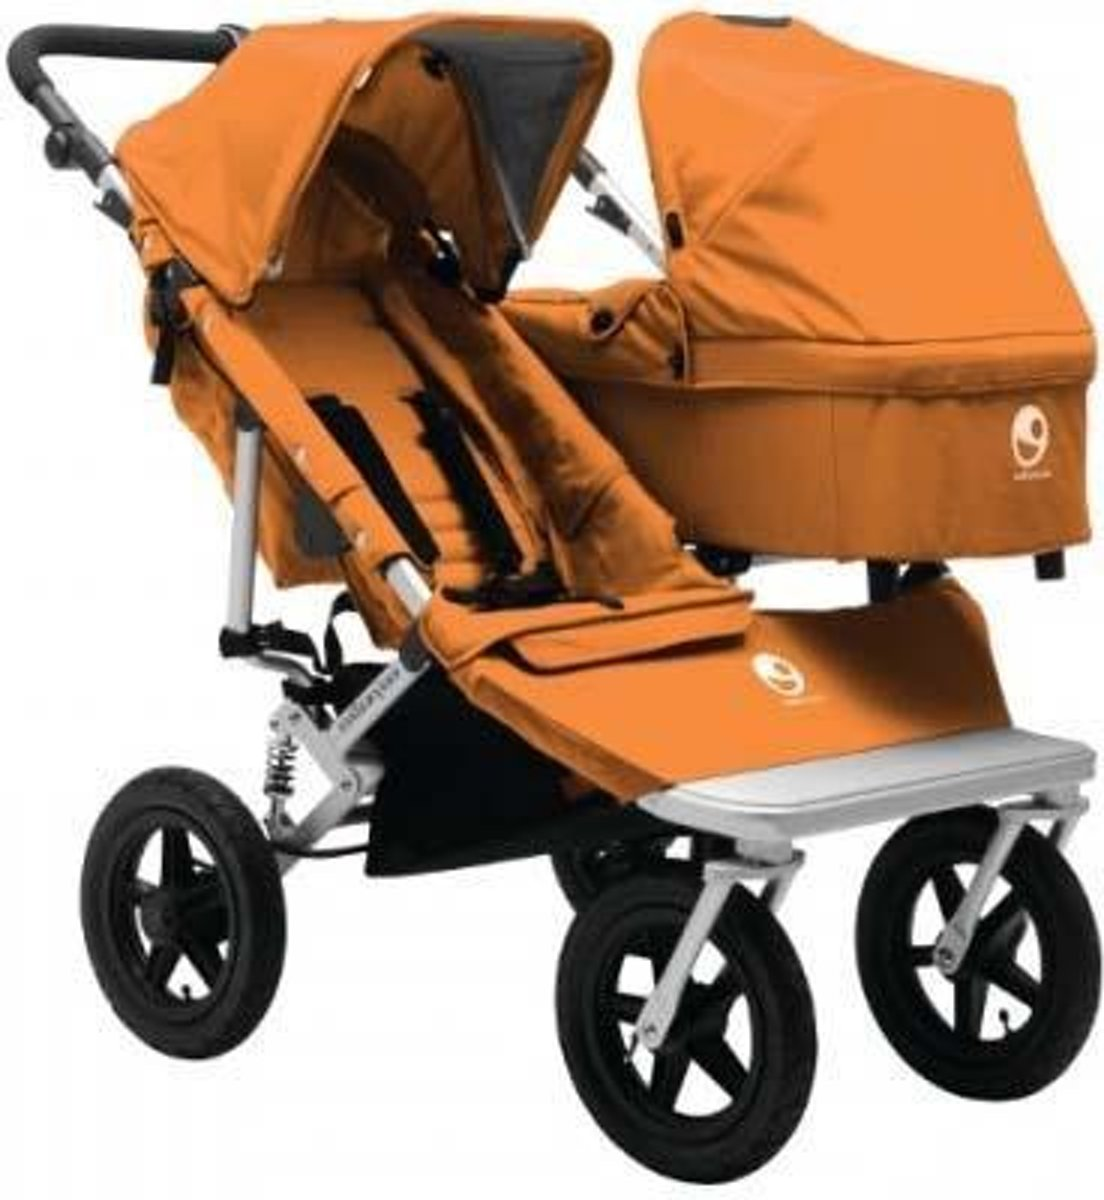 Kinderwagen Easywalker Duo Bol Easywalker Duo Base Plus Oranje